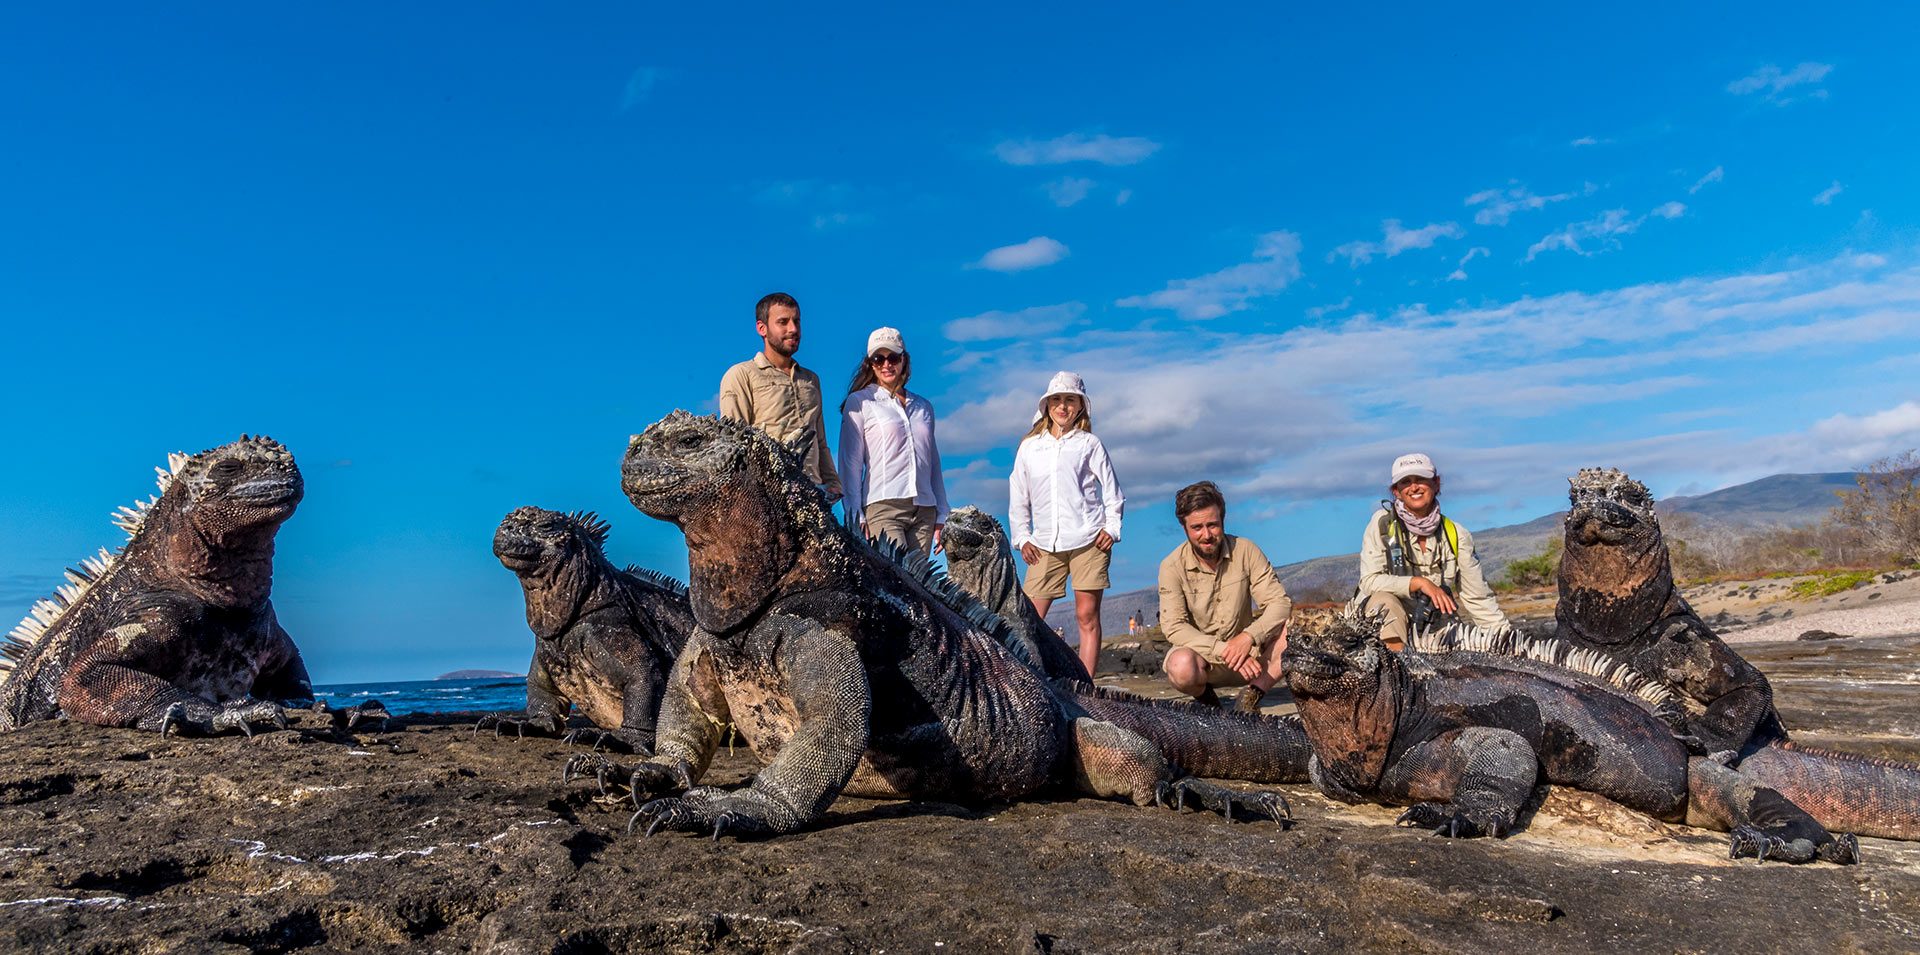 Marine Iguanas posing with tourists in the Galapagos Islands